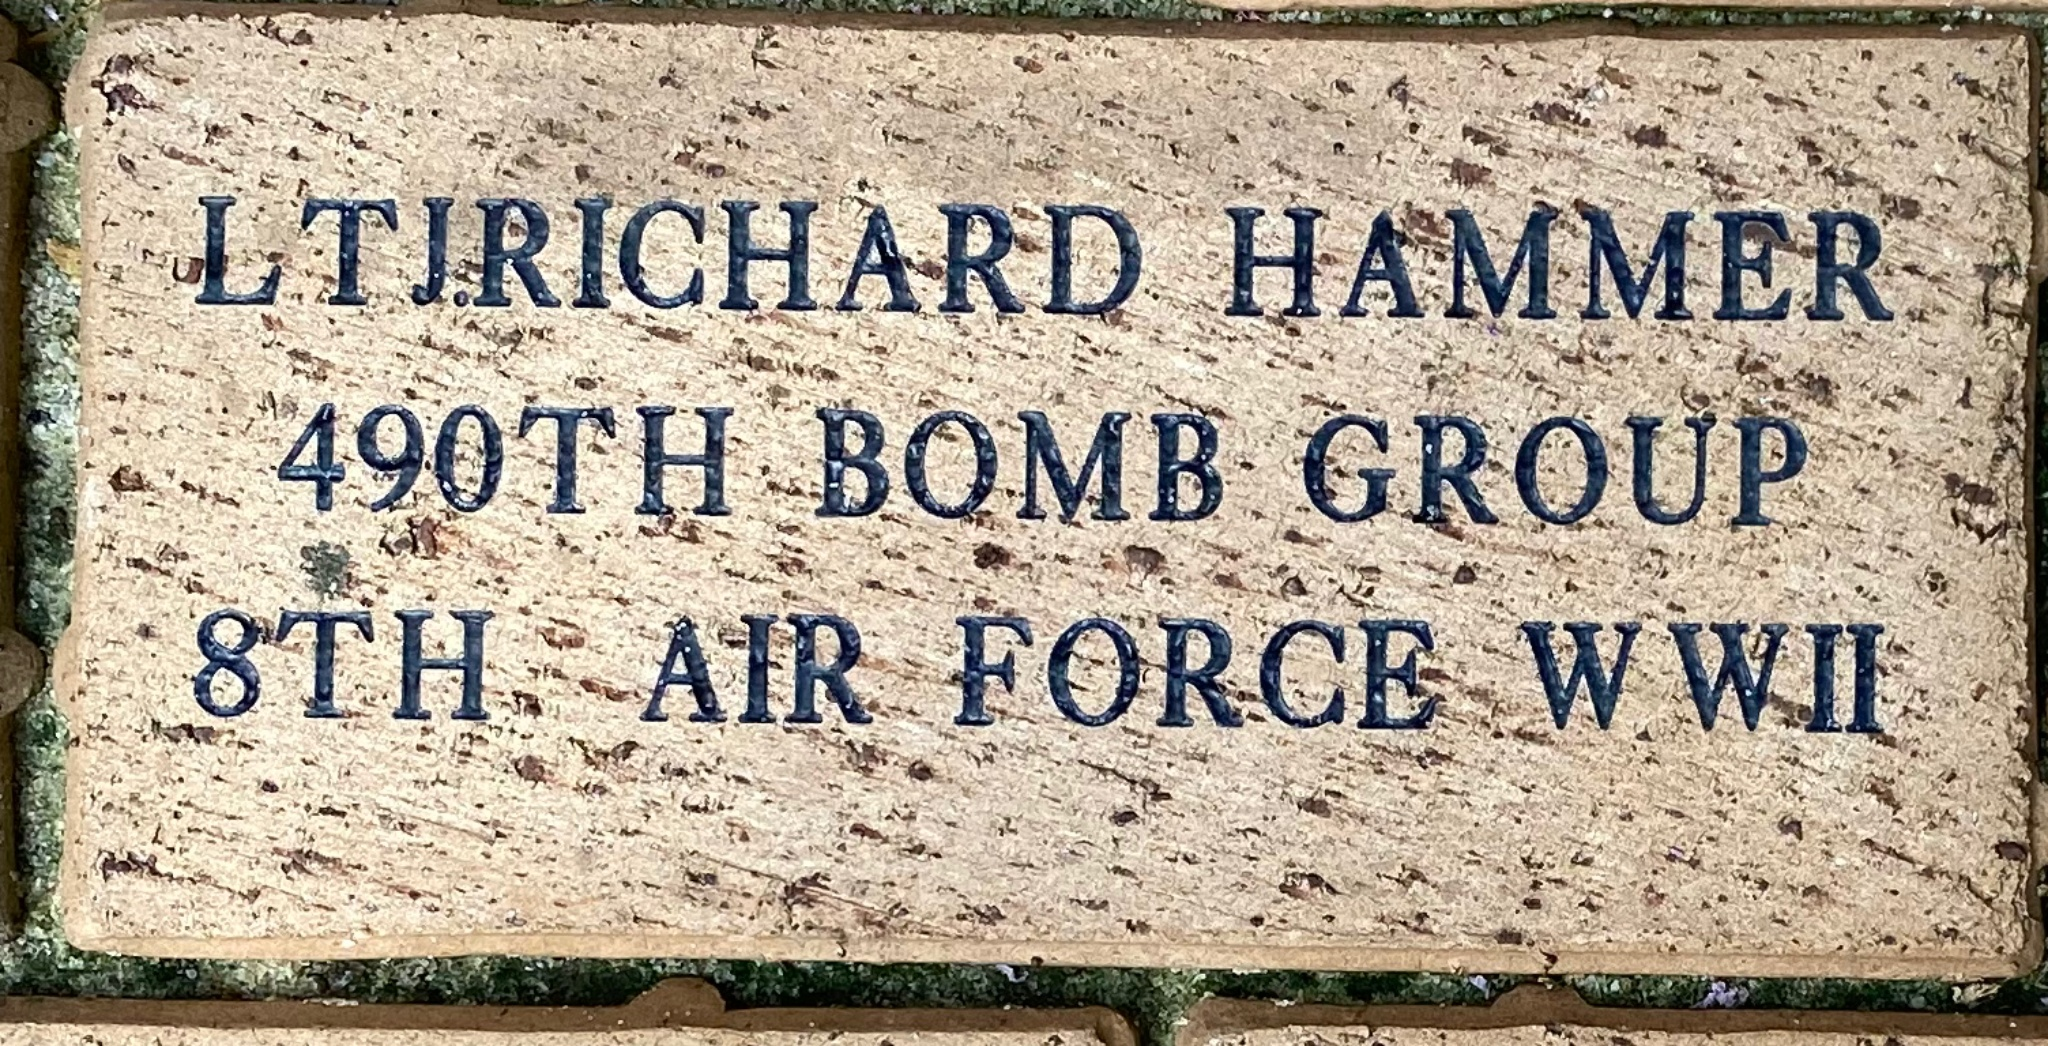 LT JRICHARD HAMMER 490TH BOMB GROUP 8TH AIR FORCE WWII